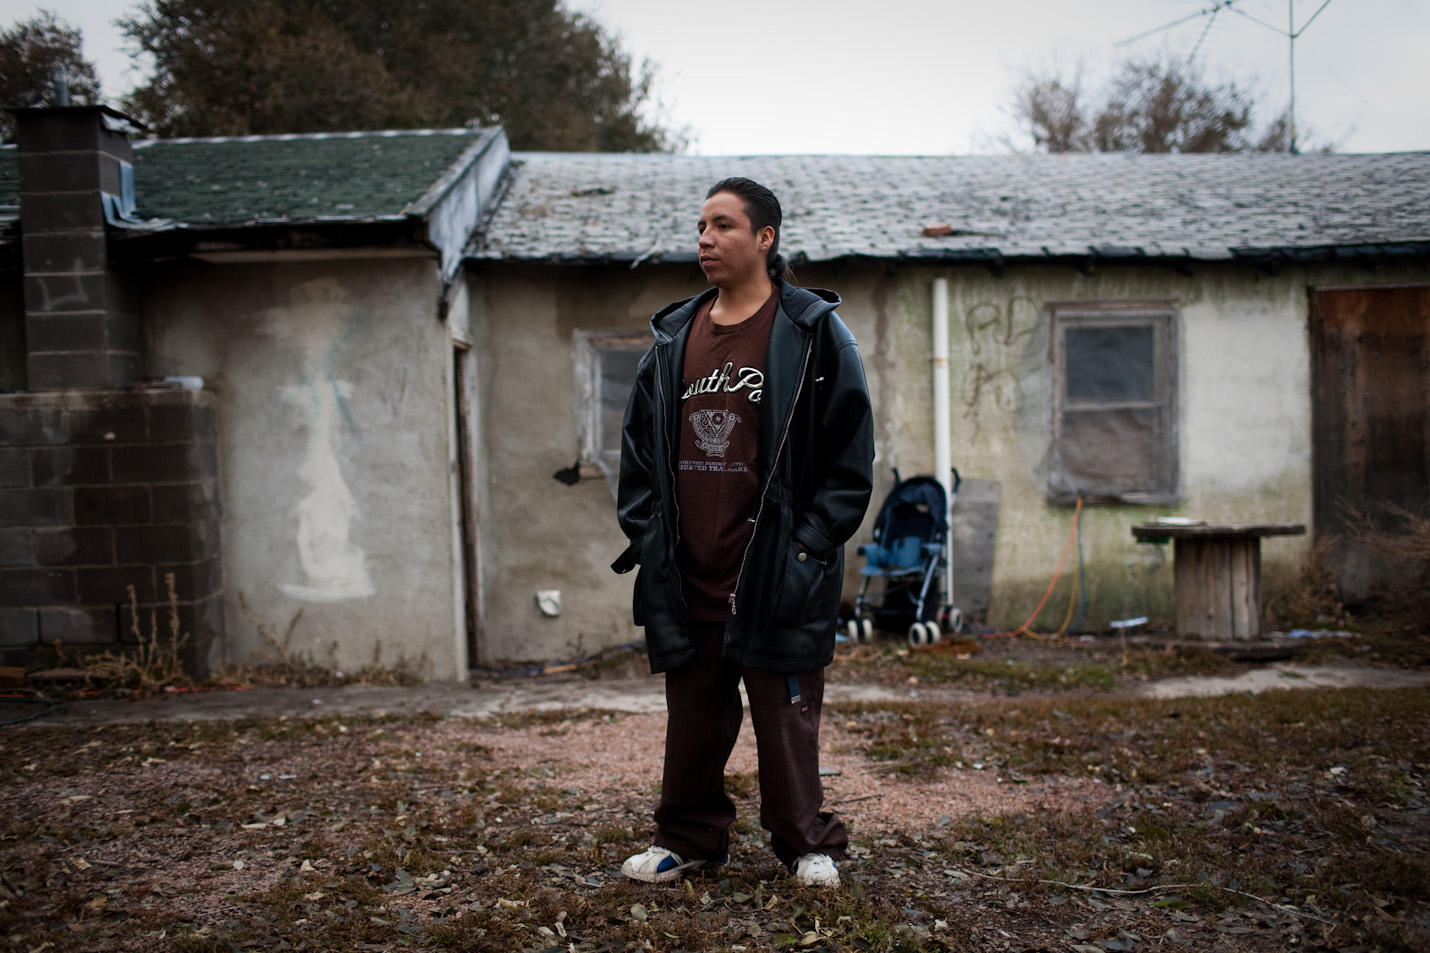 Rich Lone Elk, 24, a member of the North Side Tre Tre Gangsta' Crips, stands outside of his house, in Pine Ridge, South Dakota, on Wednesday, October 21, 2009.  Rich and the rest of his family live without running water or plumbing.